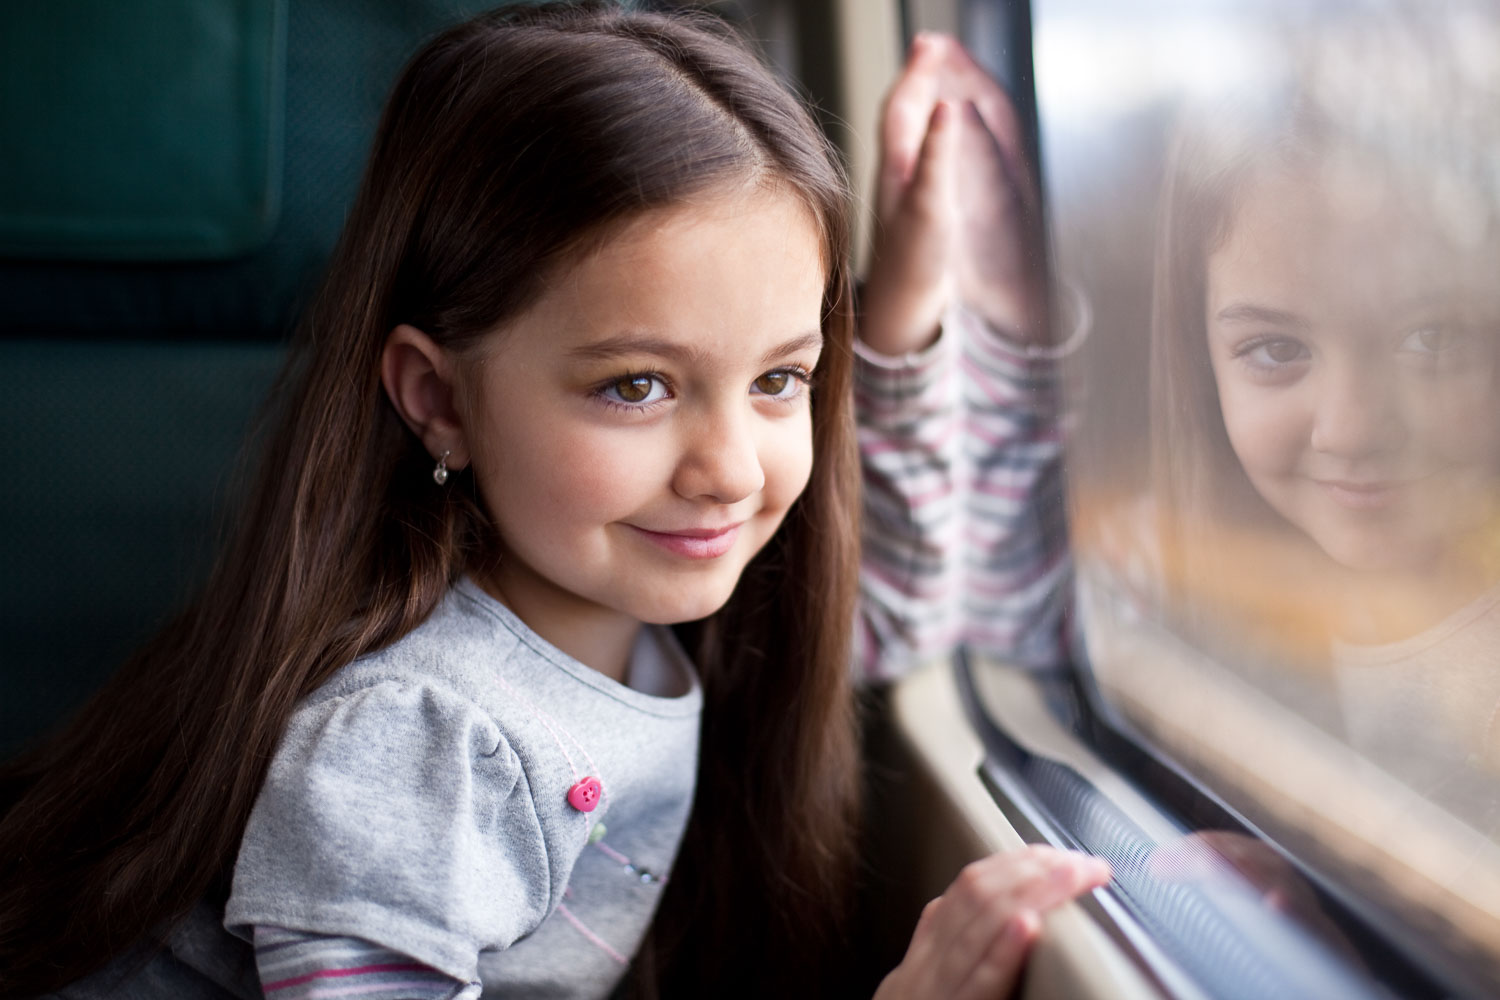 Portrait of a young girl looking out a train window